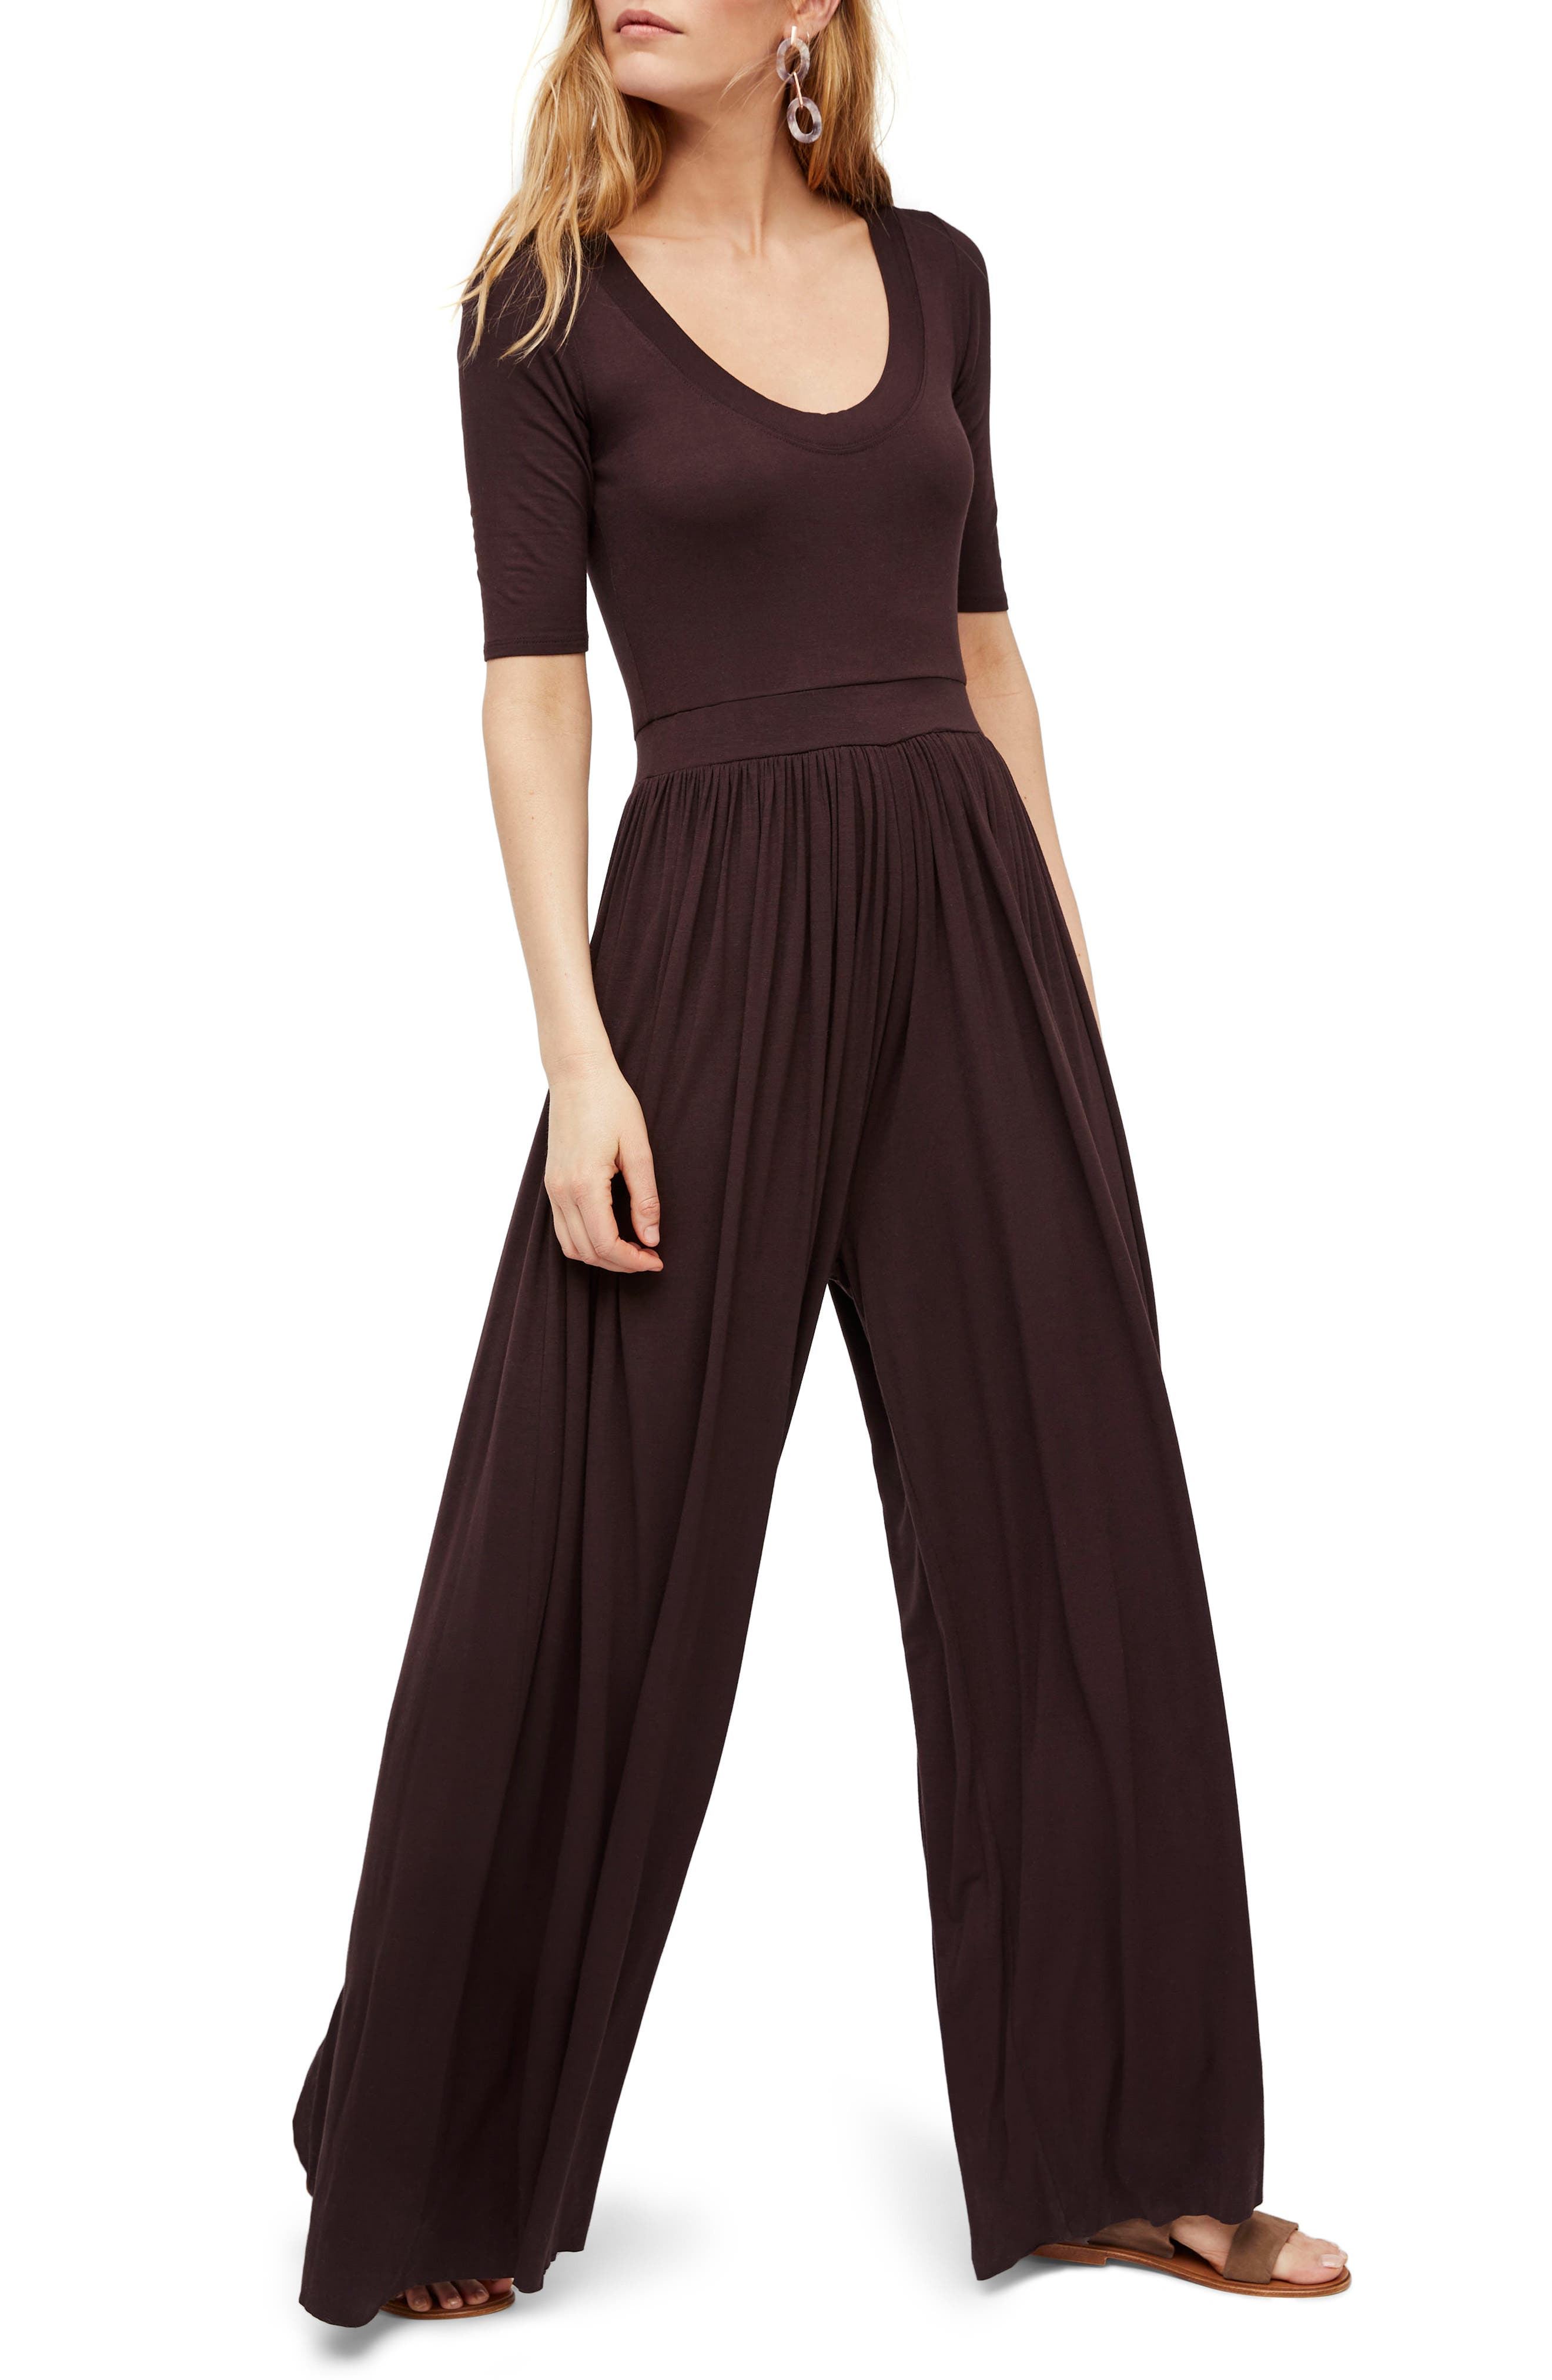 Endless Summer by Free People Rosebowl Jumpsuit,                             Main thumbnail 1, color,                             201